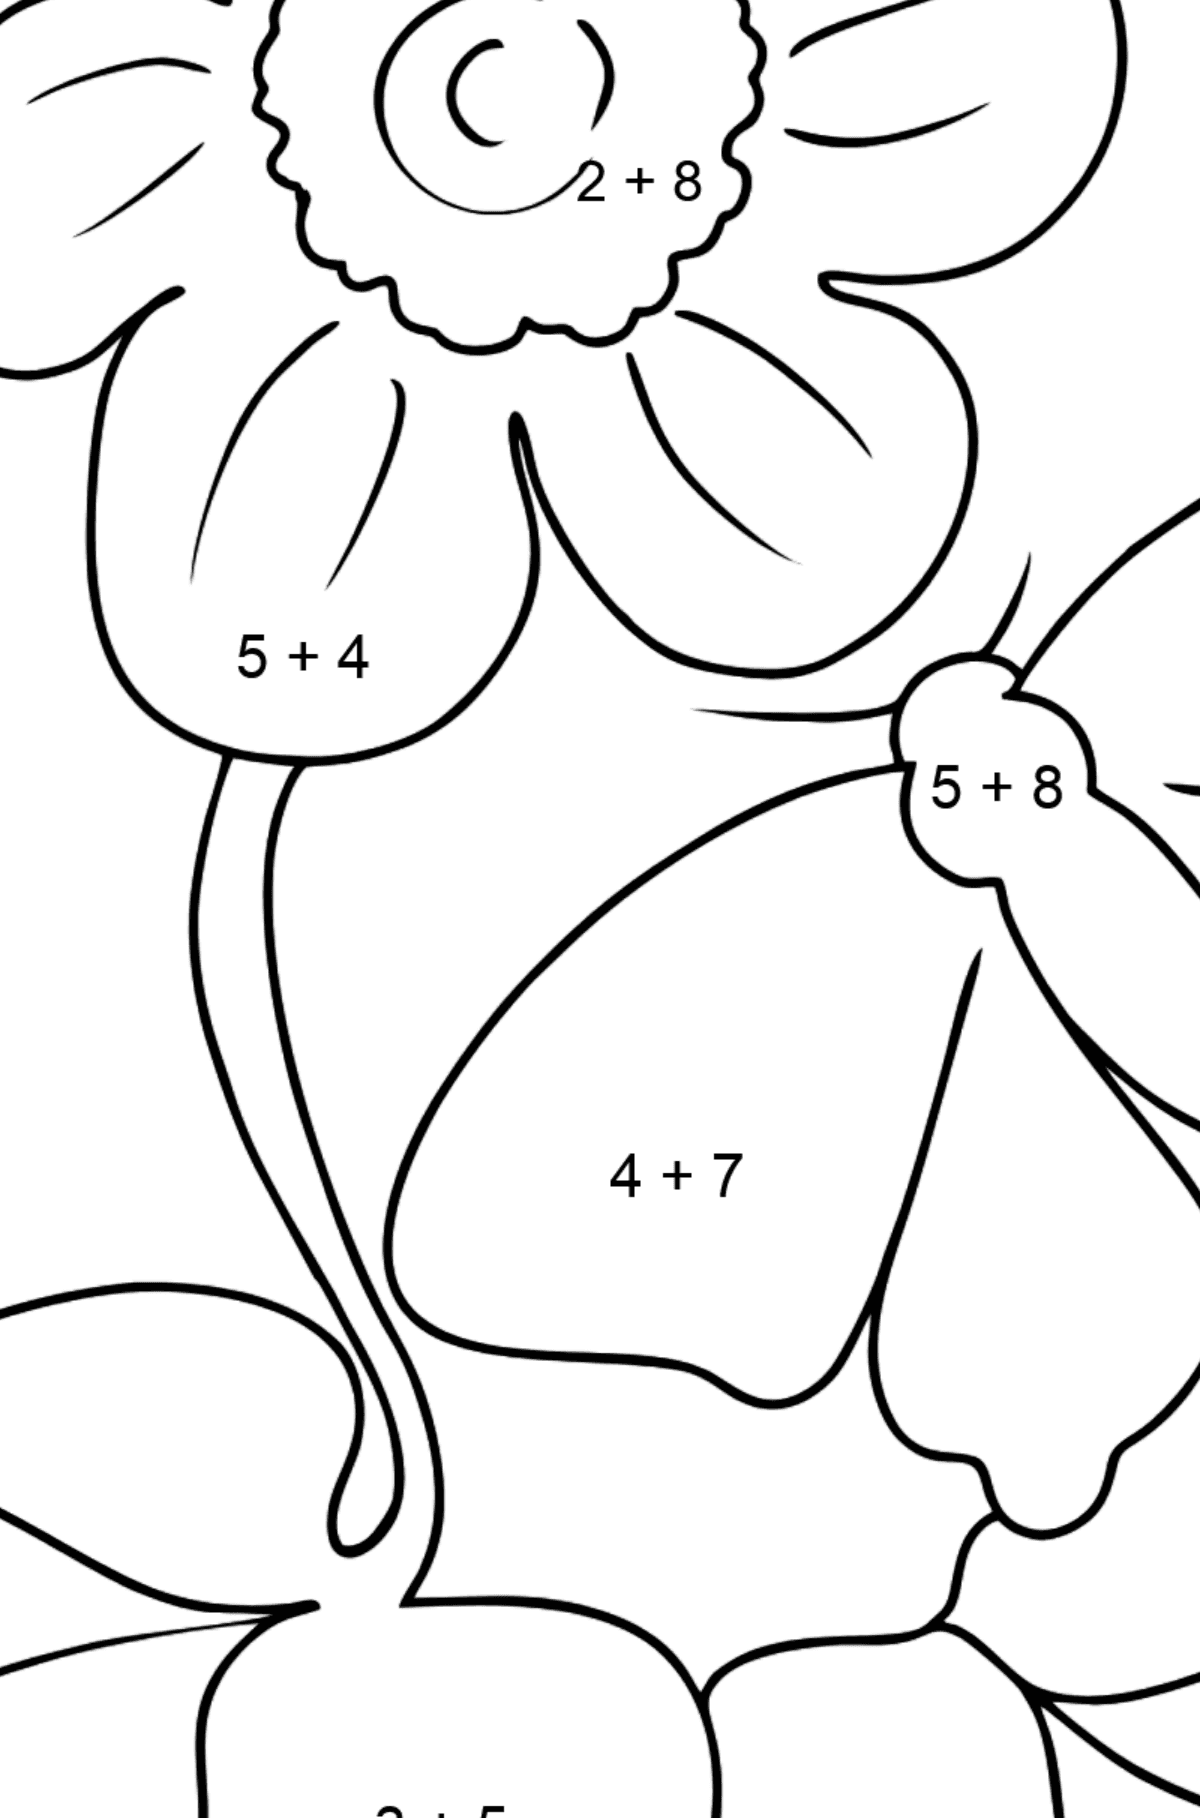 Coloring Page - flowers and butterfly - Math Coloring - Addition for Kids